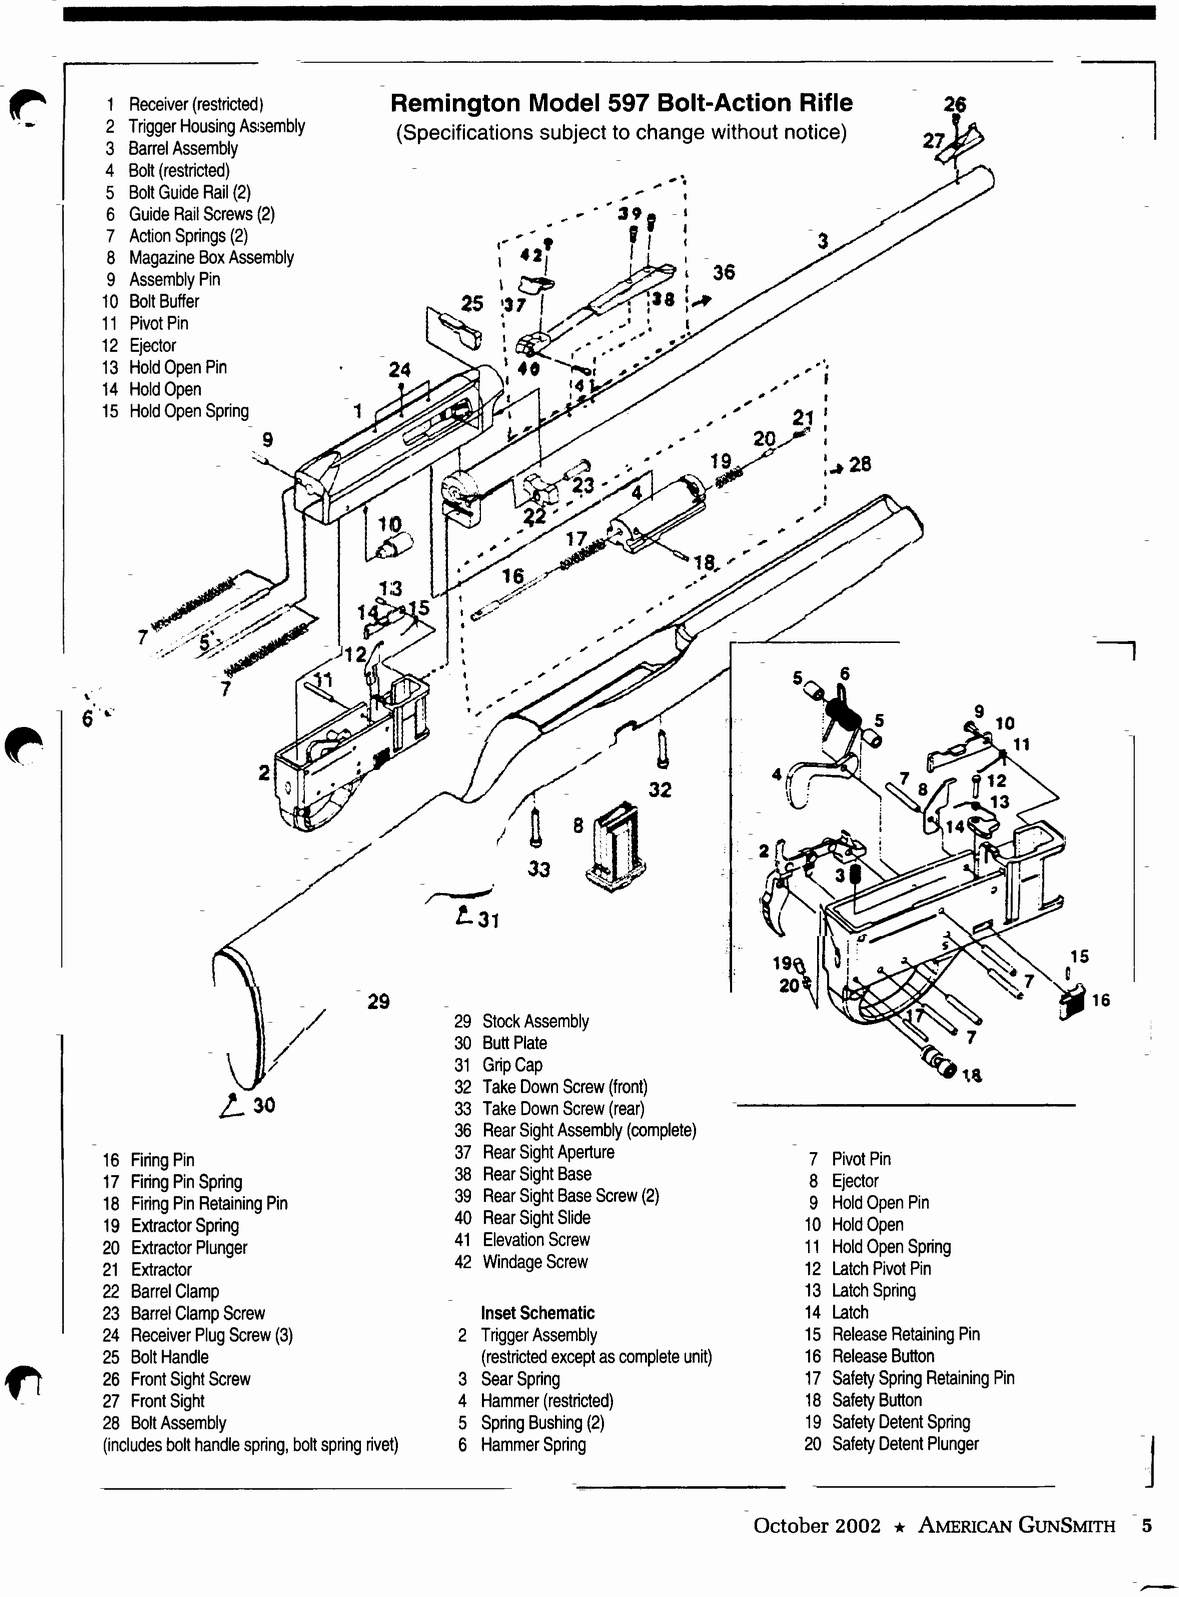 Remington 597 Trigger Assembly Diagram